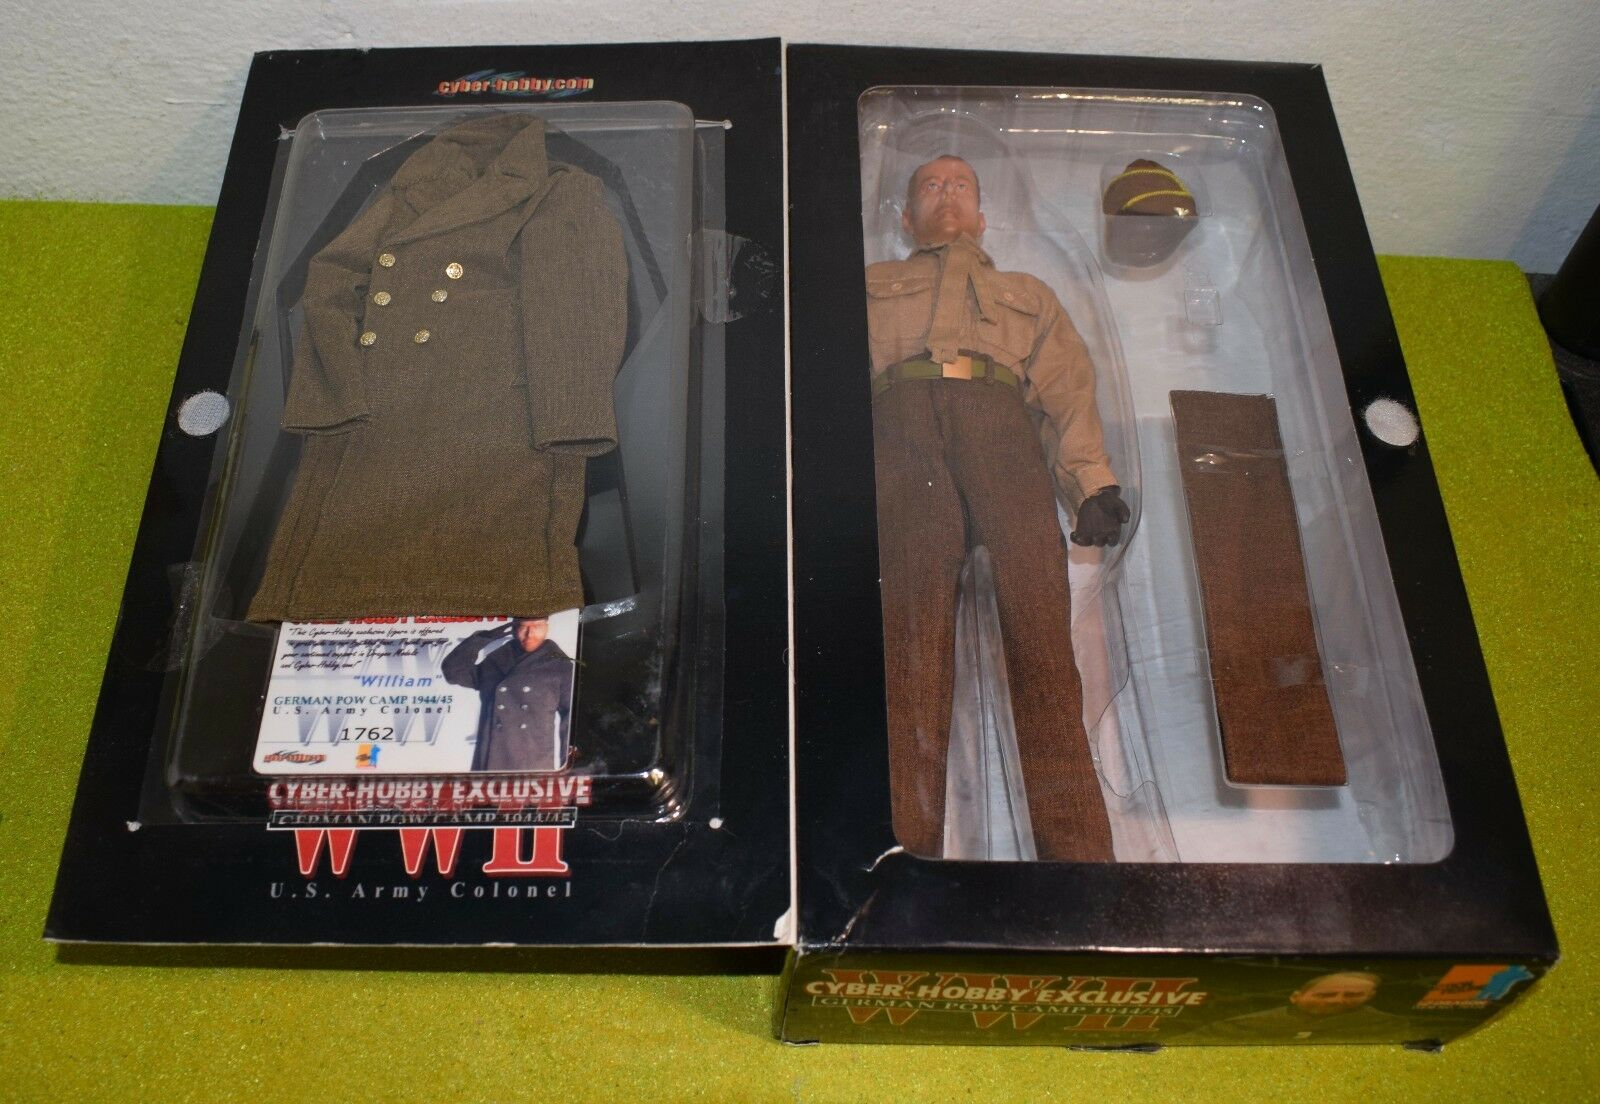 DRAGON 1/6 SCALE WW II US WILLIAM ARMY COLONEL EX-DISPLAYSEE PICTURES